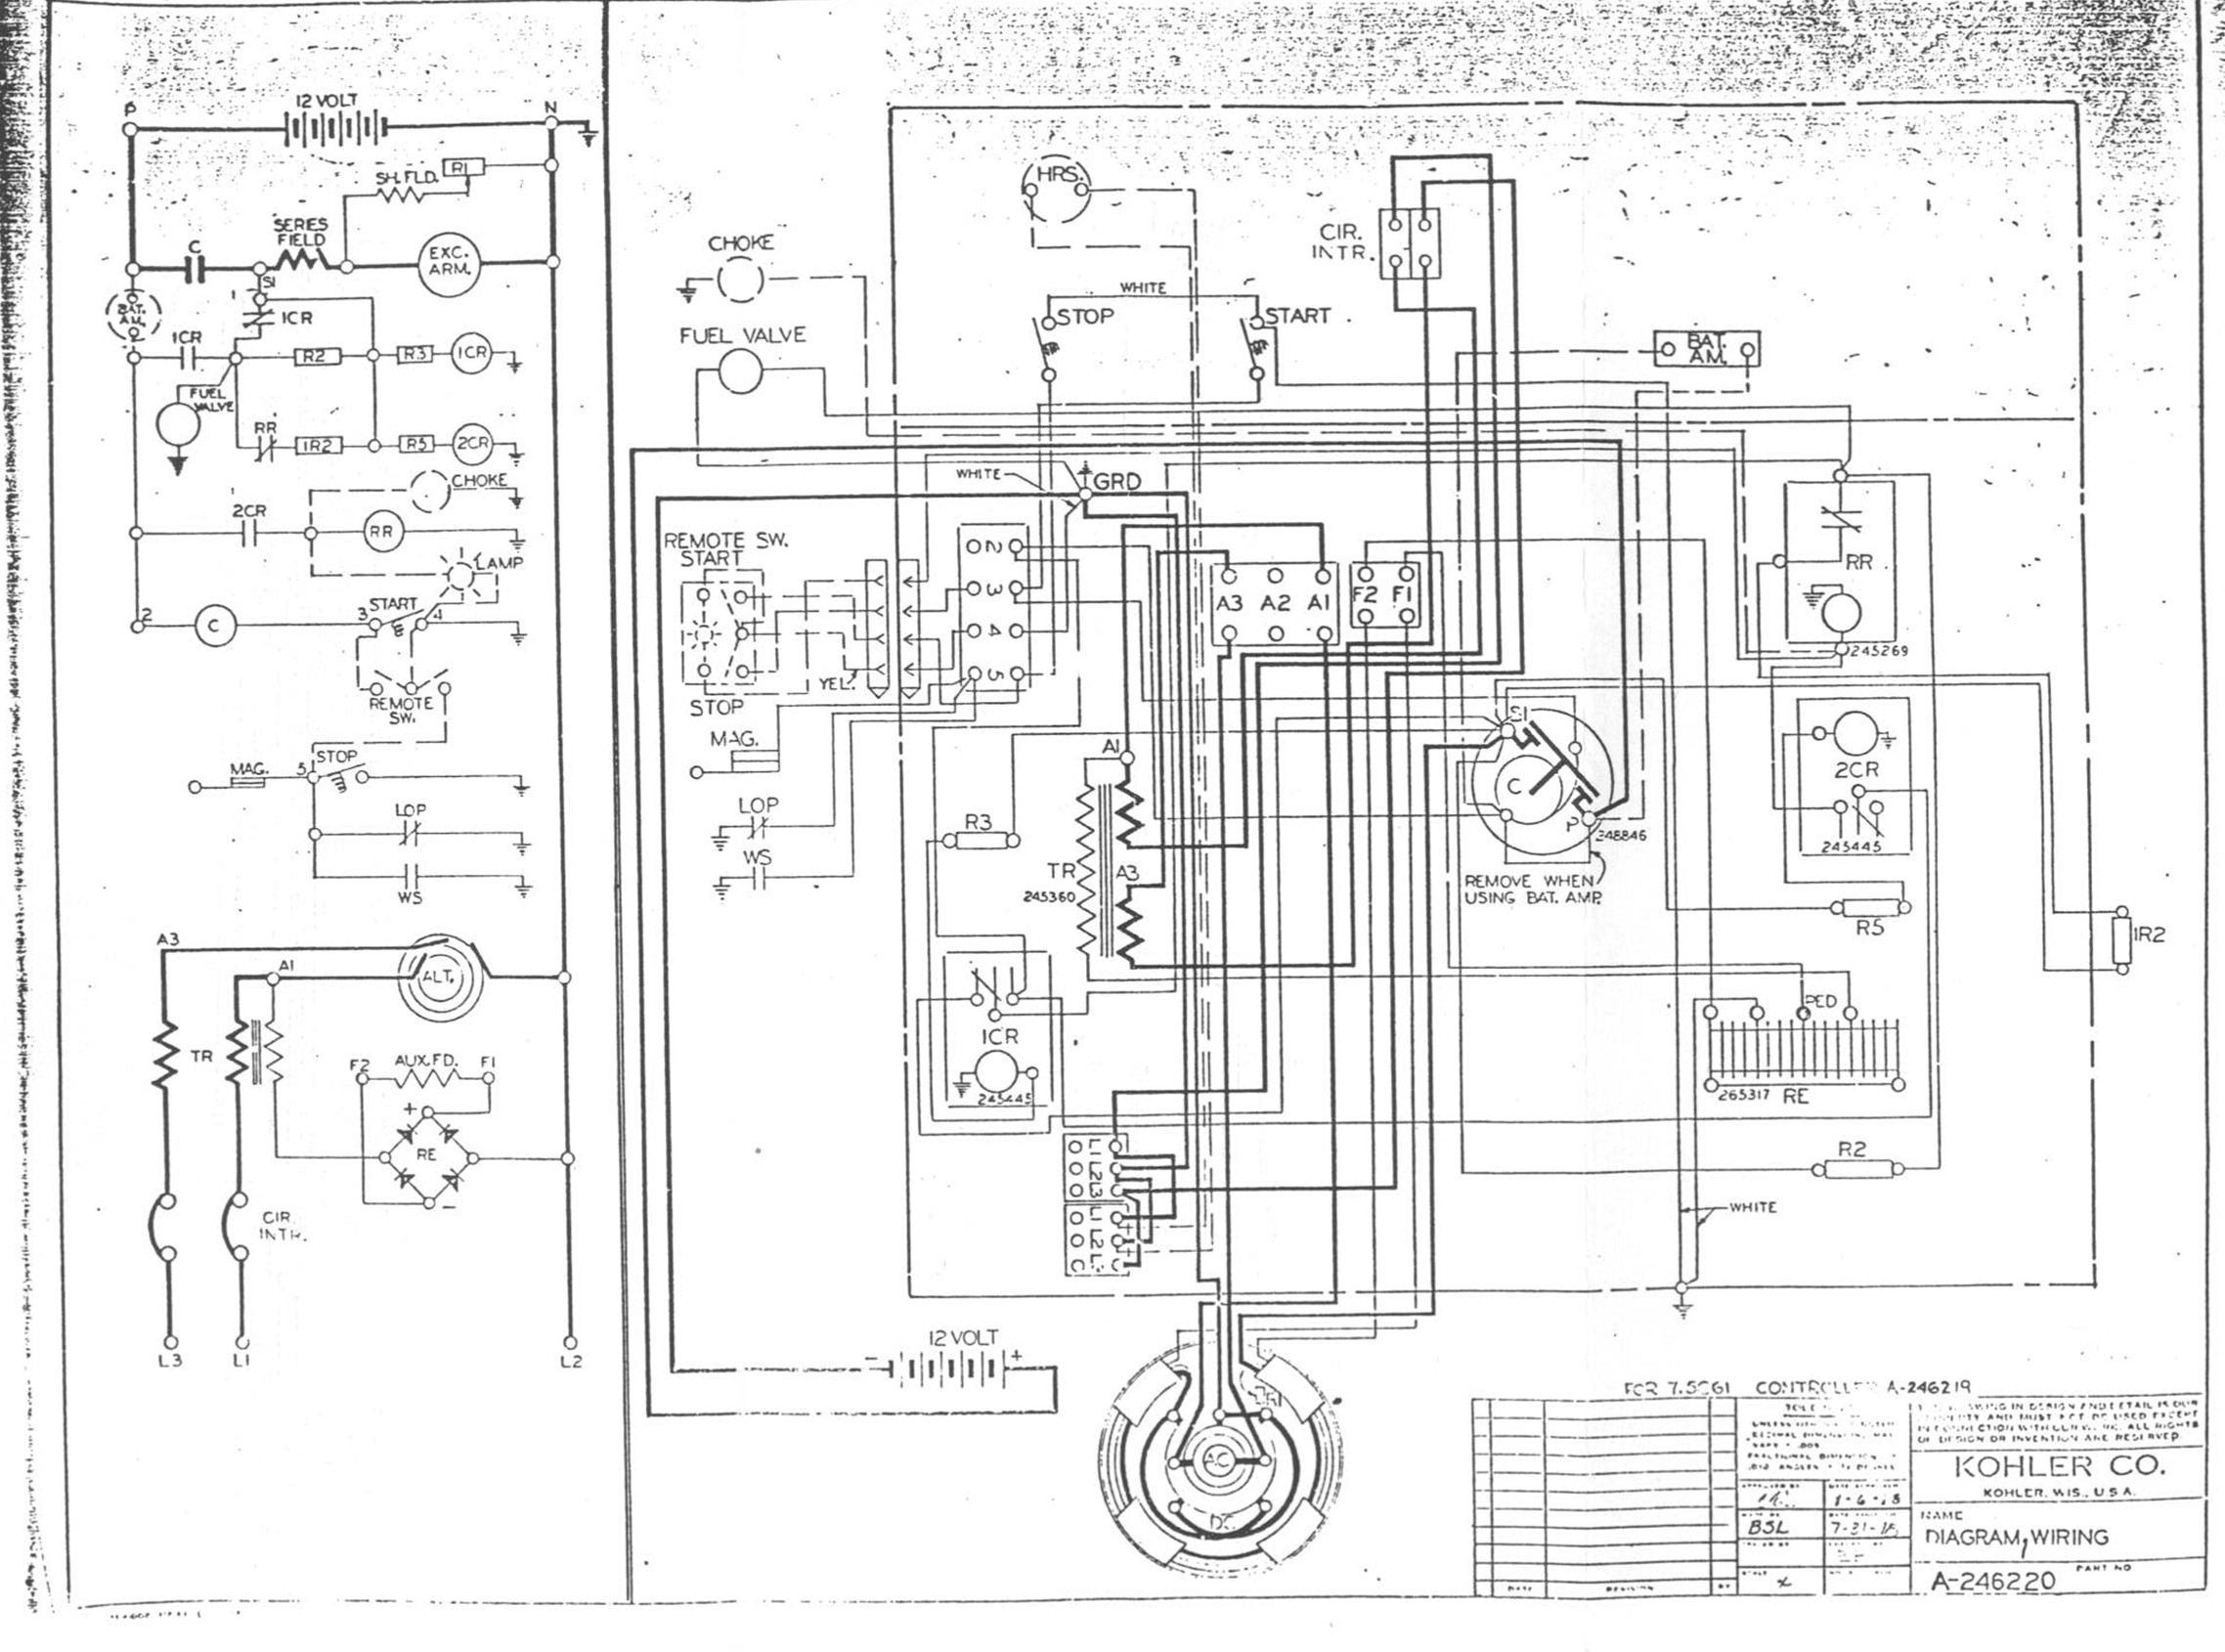 KOHLER DRAWING perkins genset engine & kohler manuals and information kohler generator wiring diagrams at gsmx.co